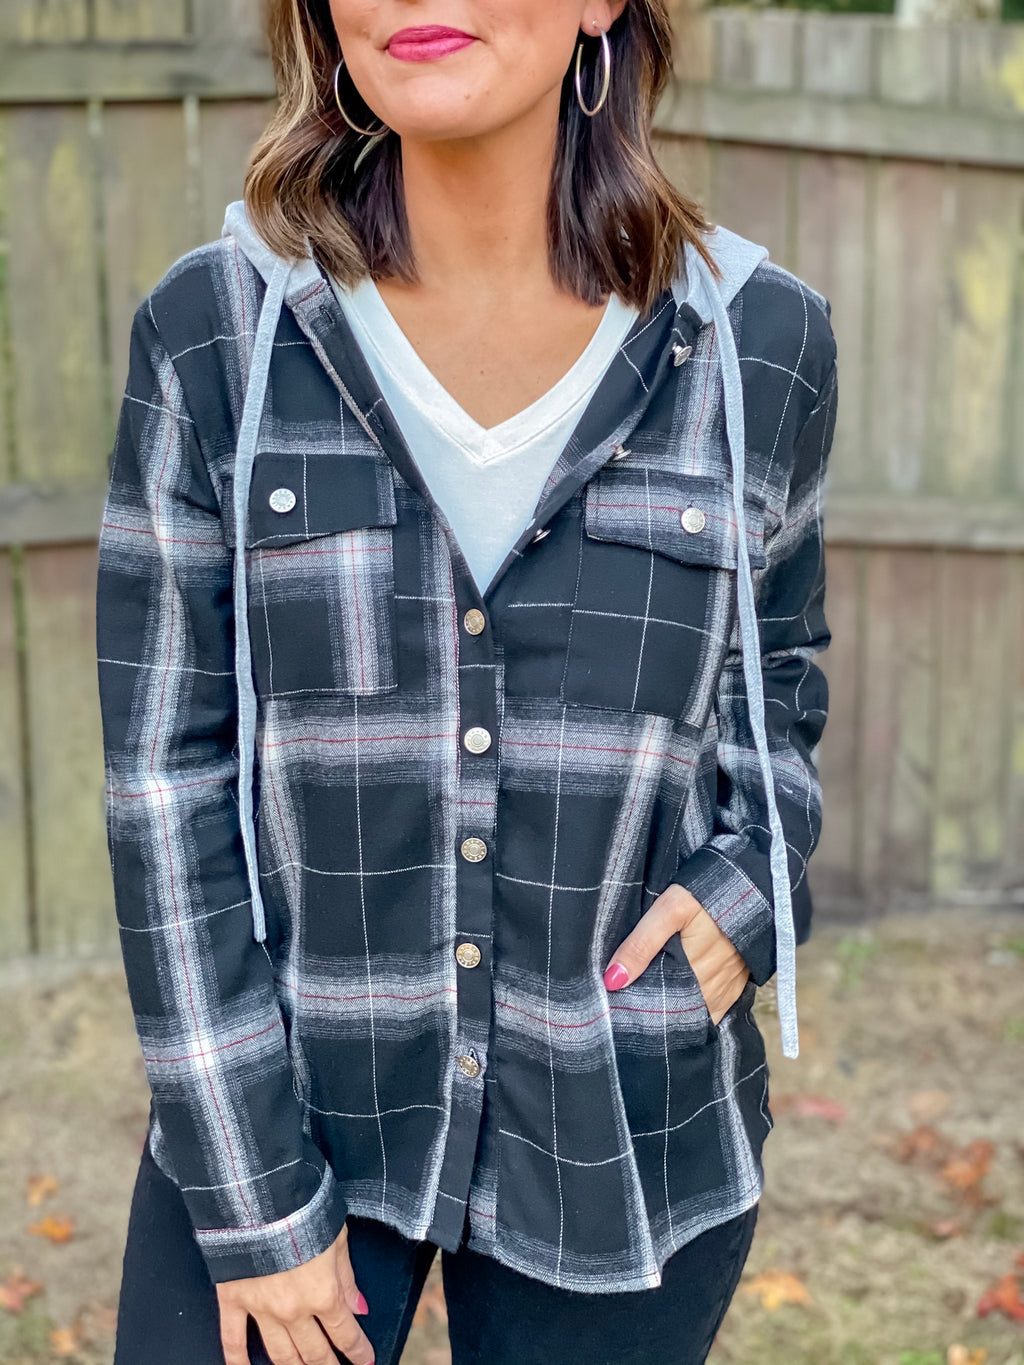 Not Your Boyfriend's Flannel